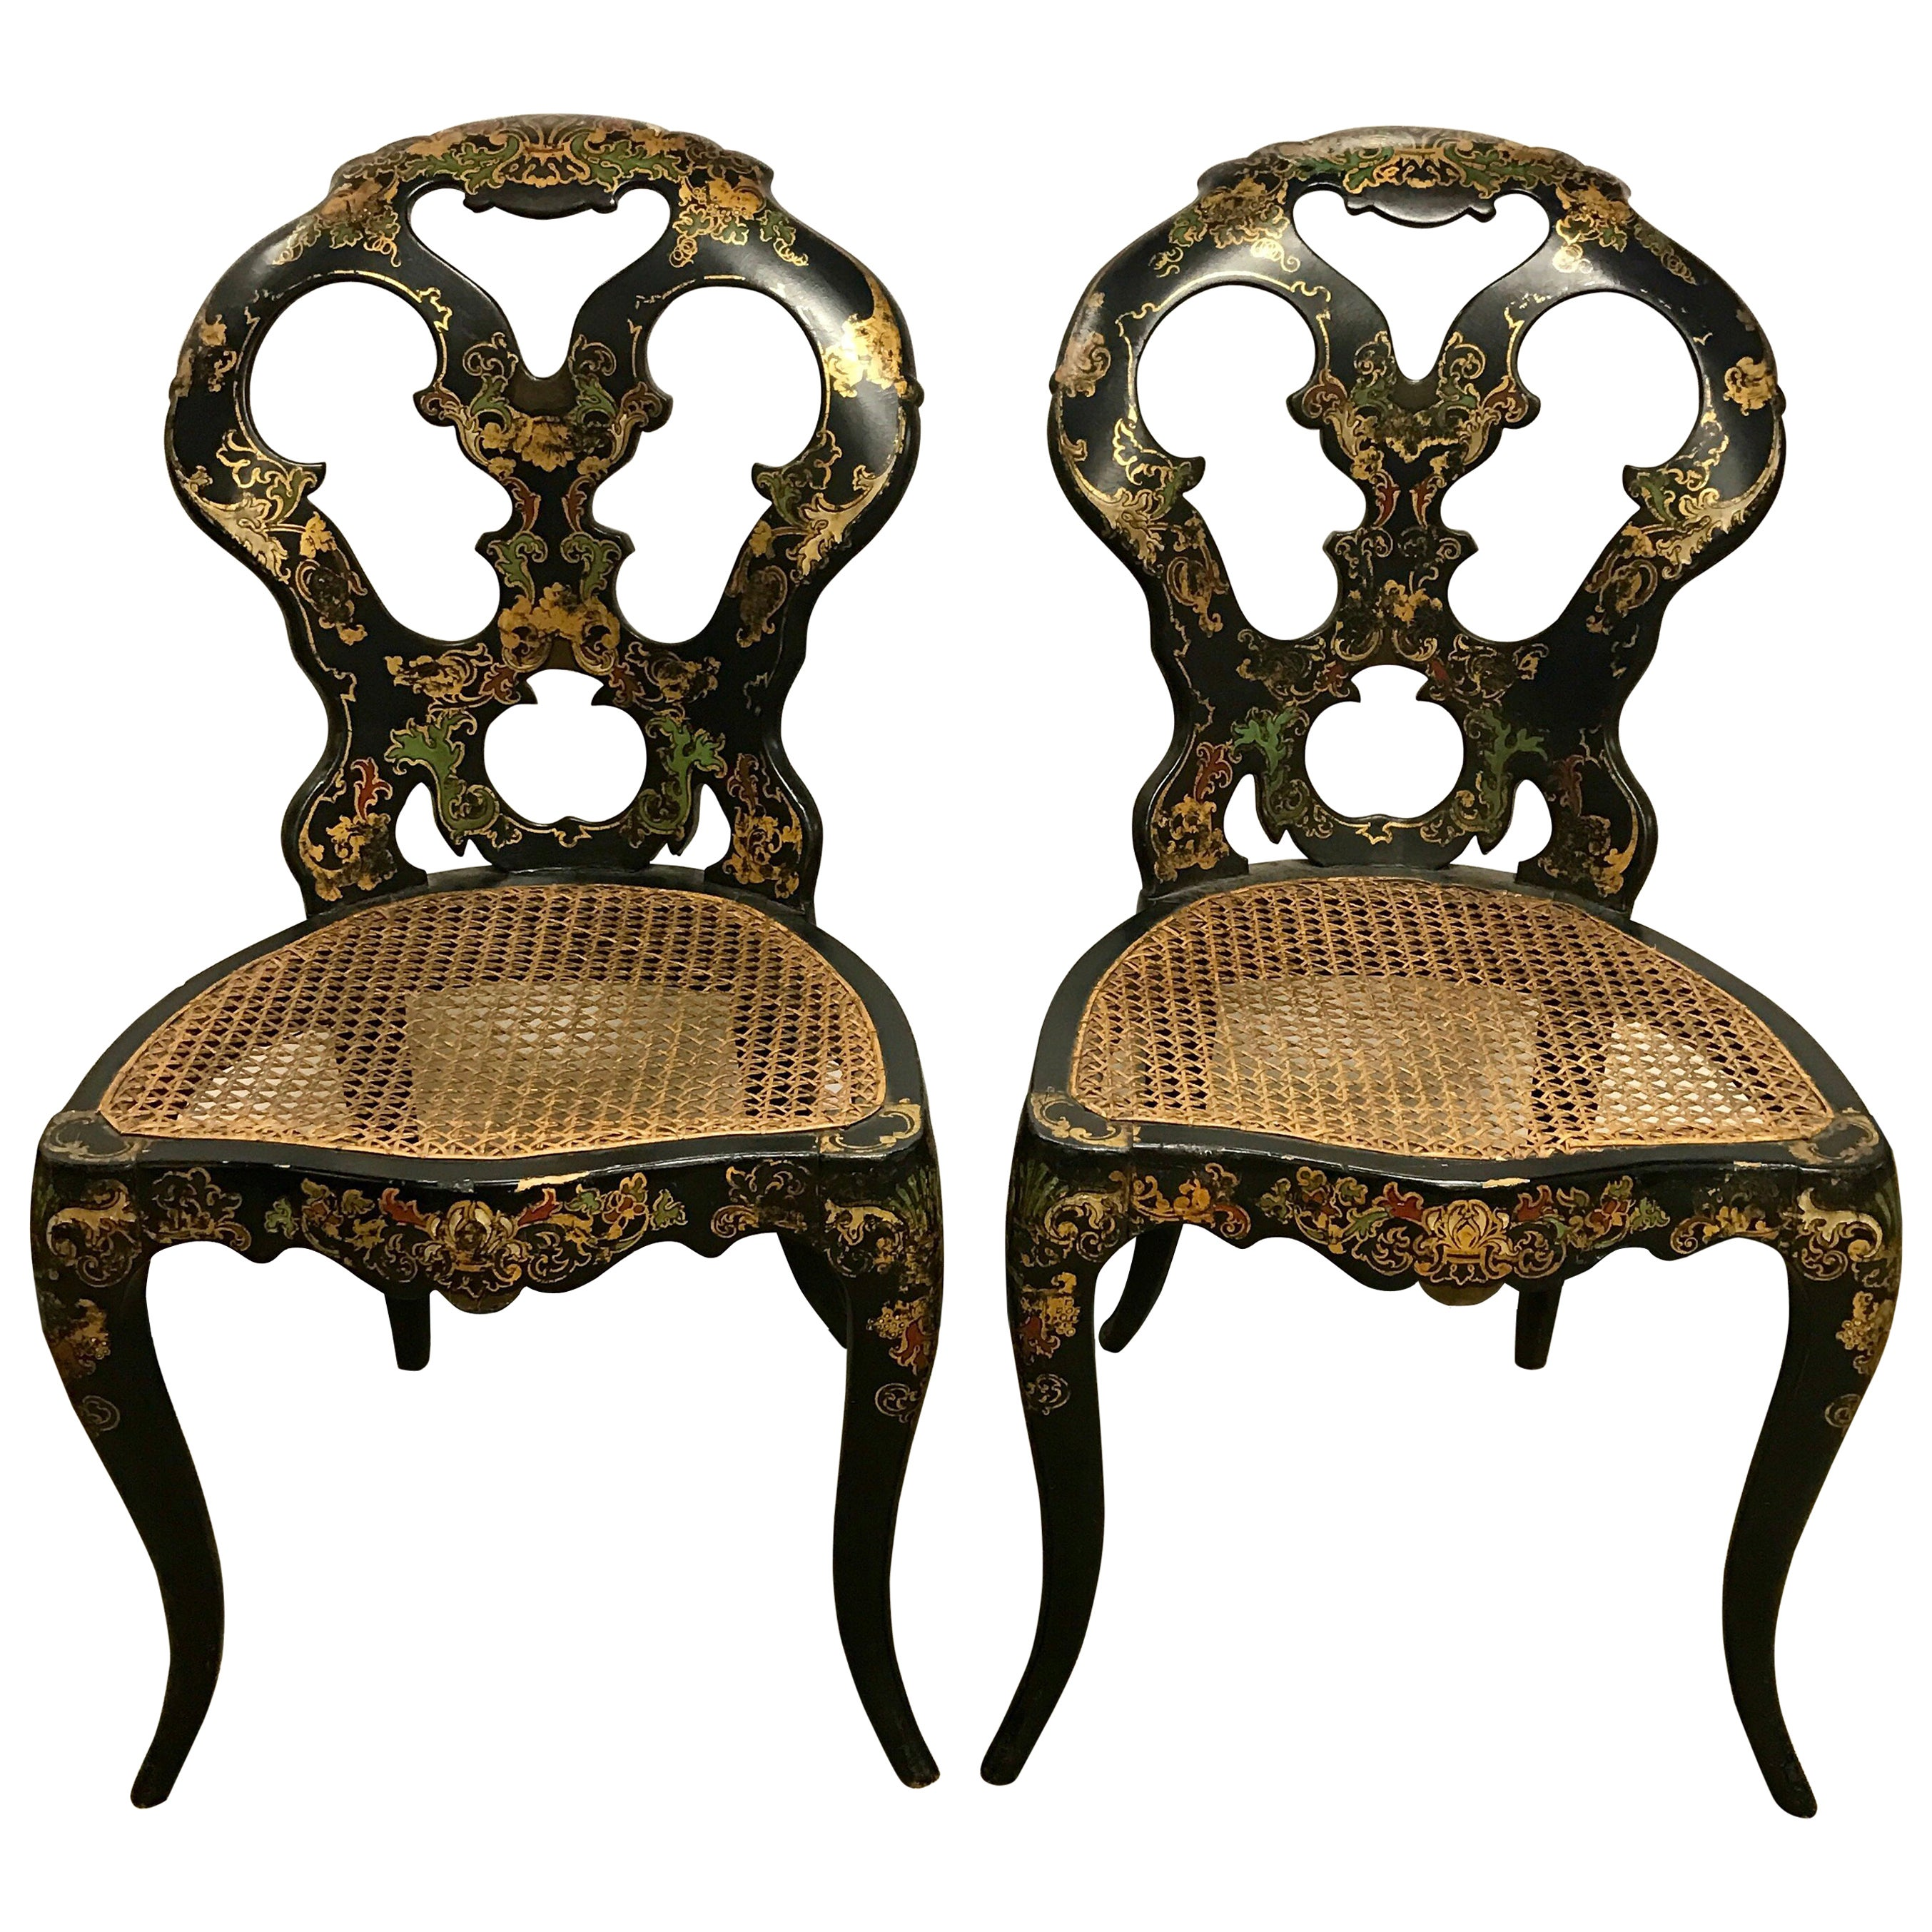 antique cane chairs oversized banquet chair covers pair of black japanned japan seats for sale at 1stdibs